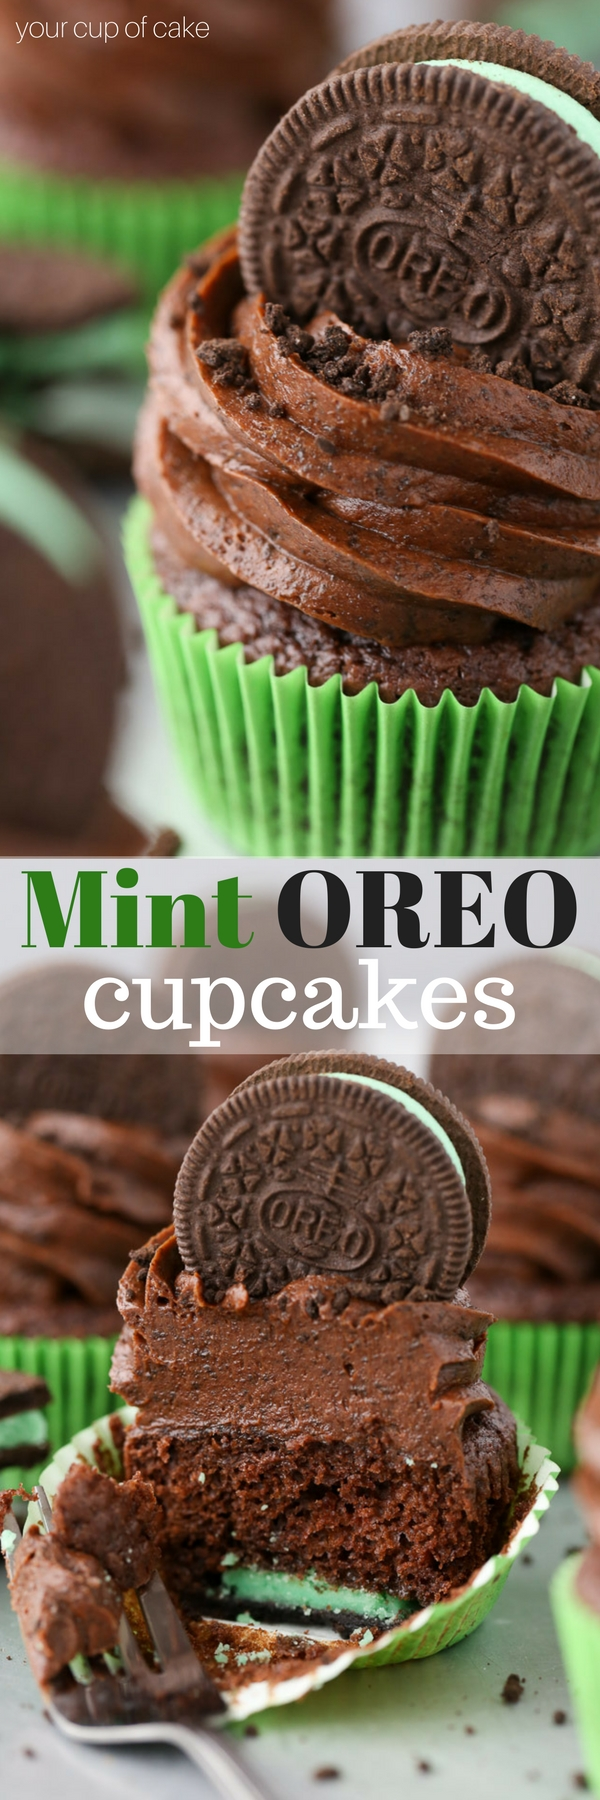 Mint OREO Cupcakes with an Oreo baked on the bottom! And Oreo Cookie frosting!